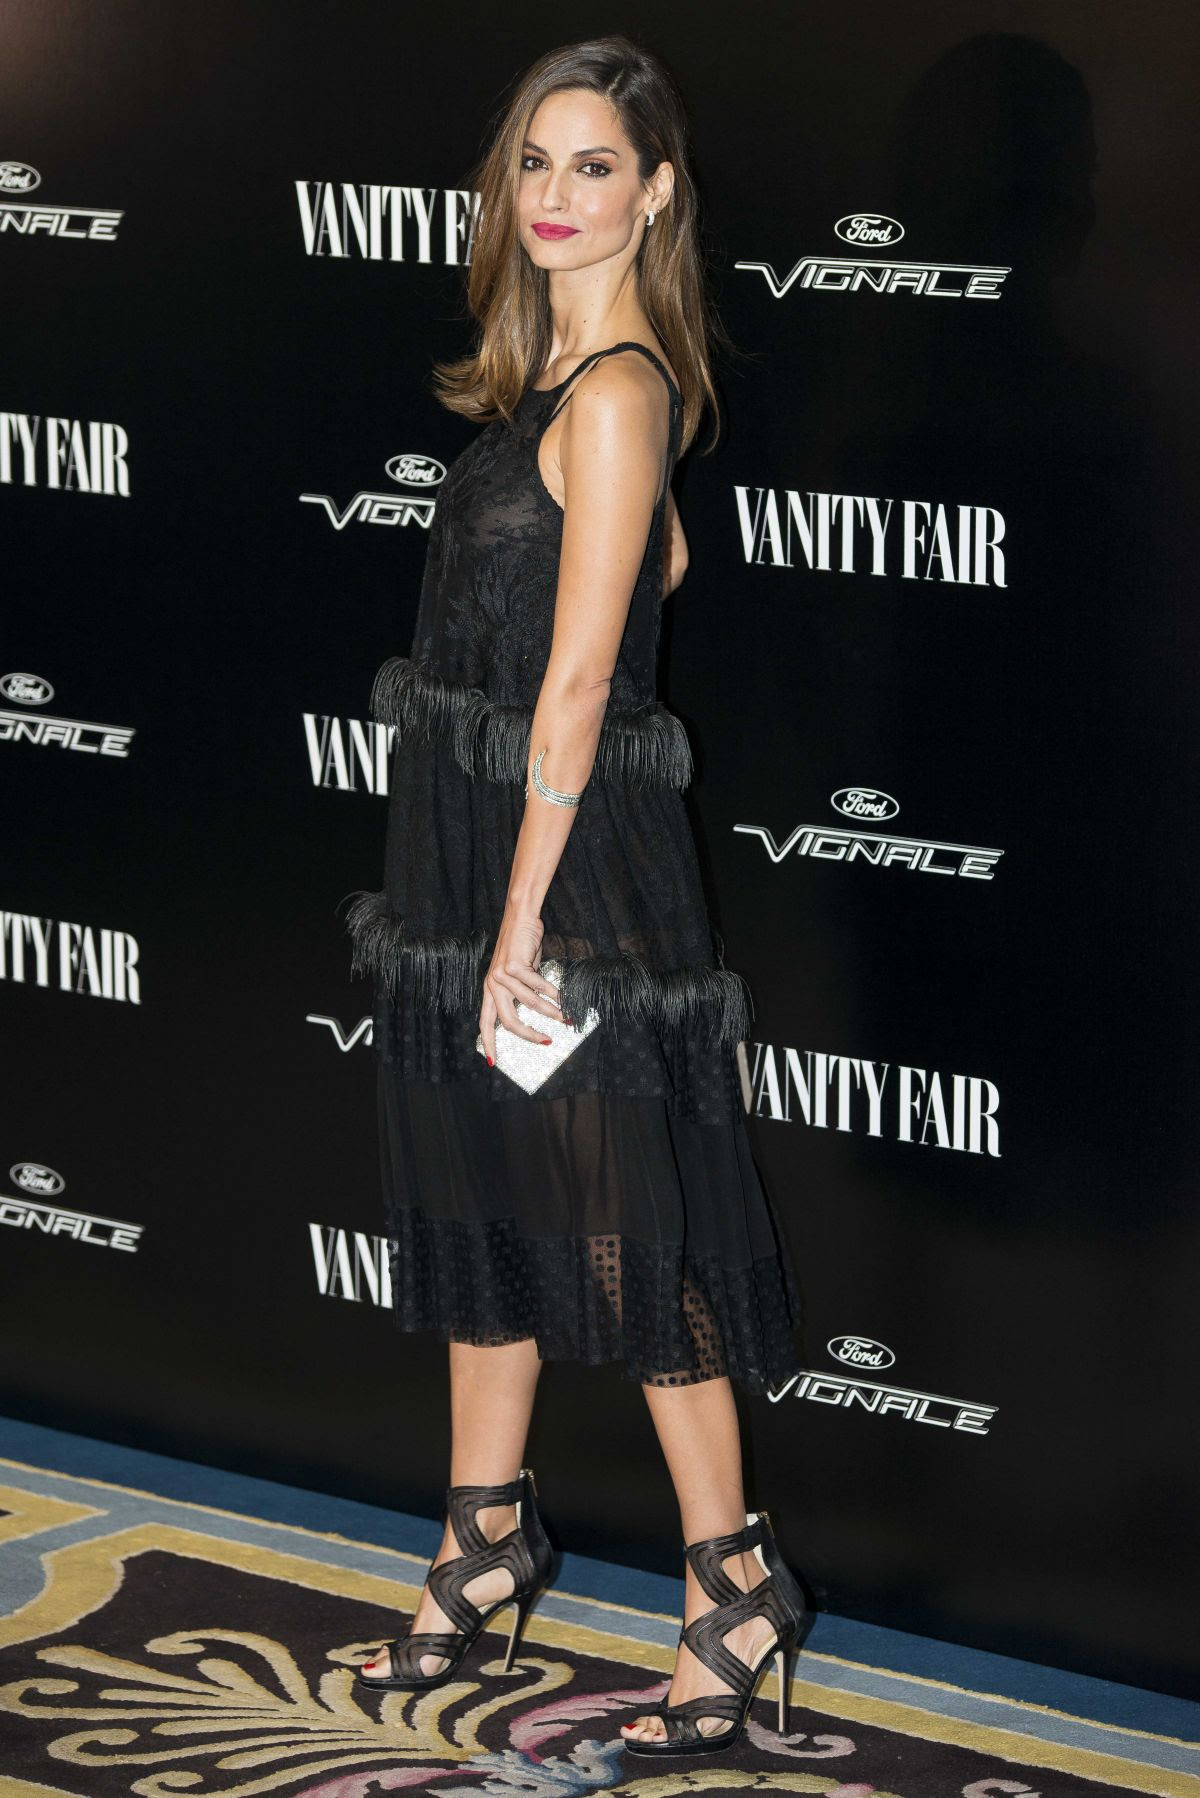 ARIADNE ARTILES at Vanity Fair Personality of the Year Gala in Madrid 11/16/2015